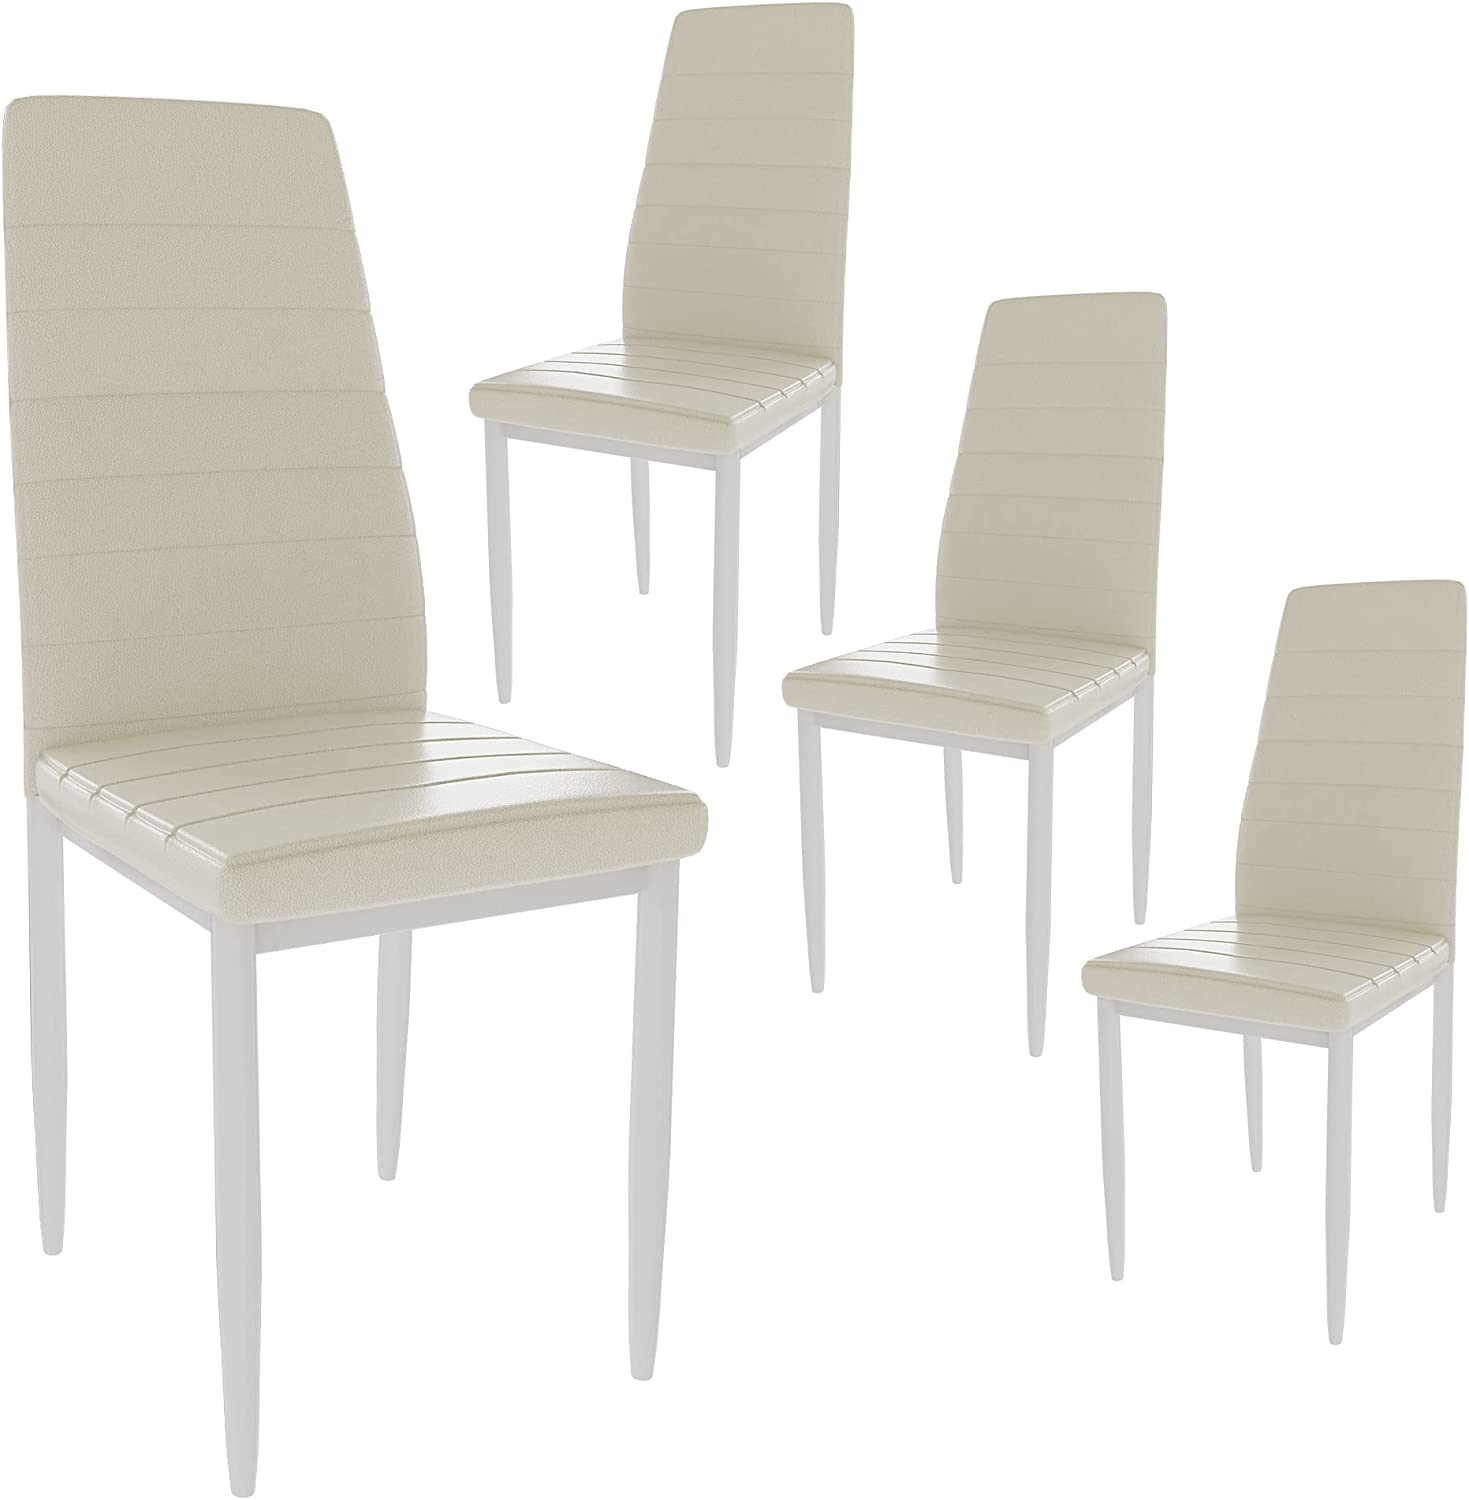 MIERES Dining Set of 4 Super sale Kitchen Upholstered Leather depot Back PU Seat